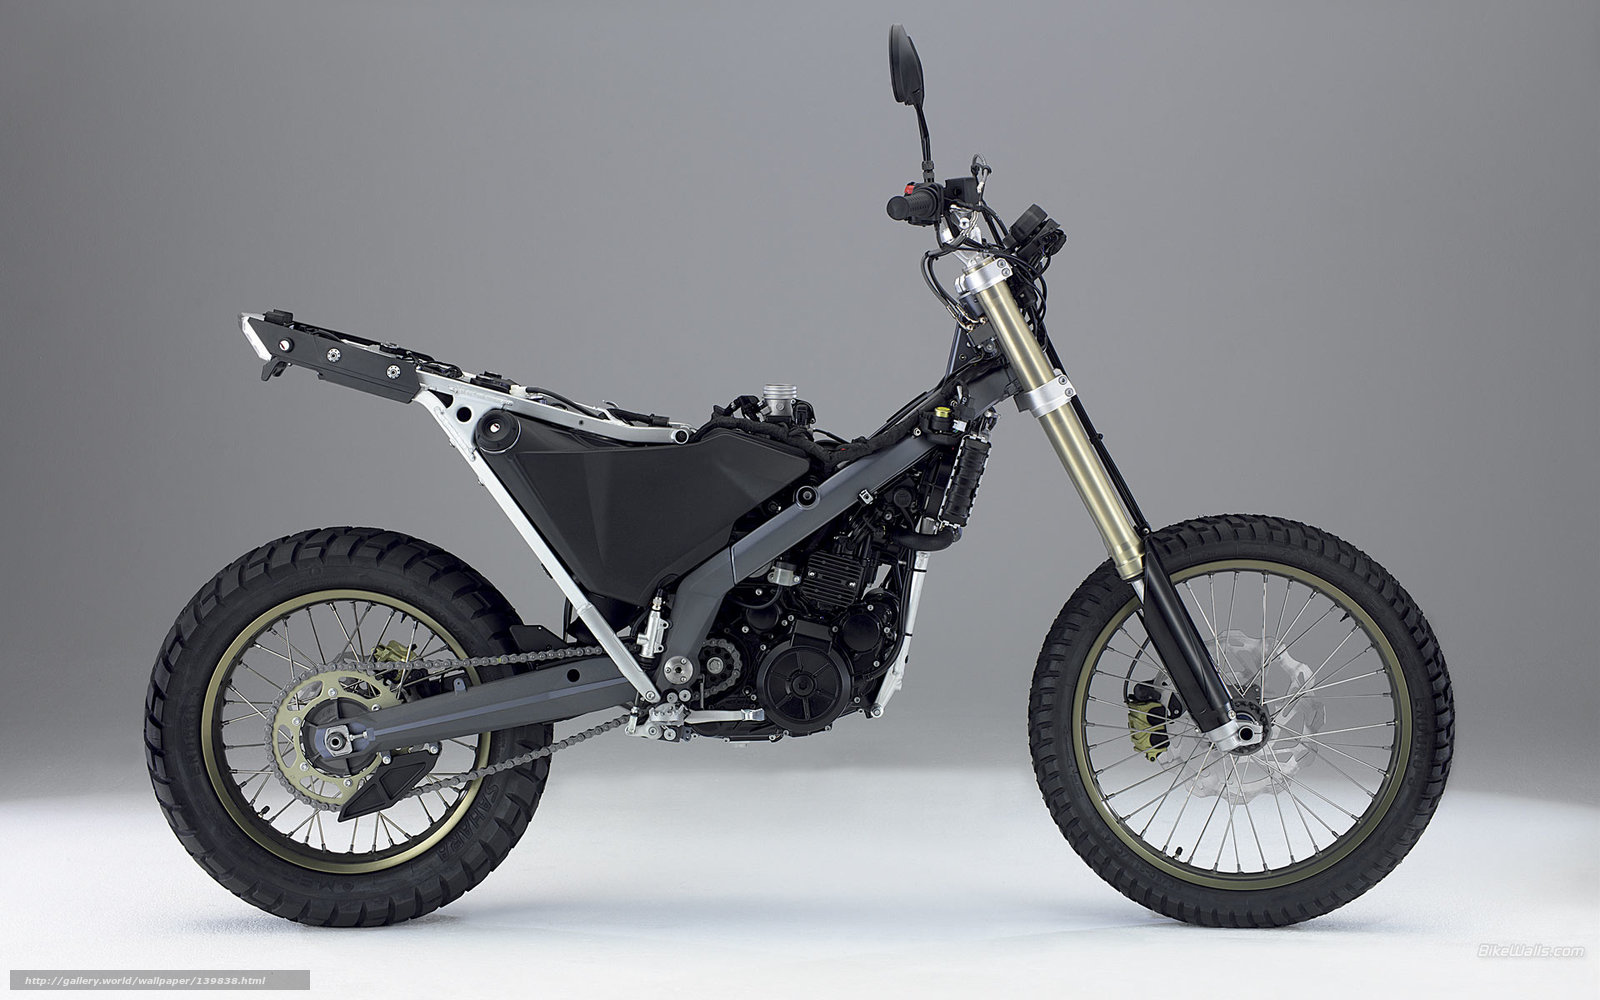 Download Wallpaper Bmw Enduro Funduro G650 Xchallenge